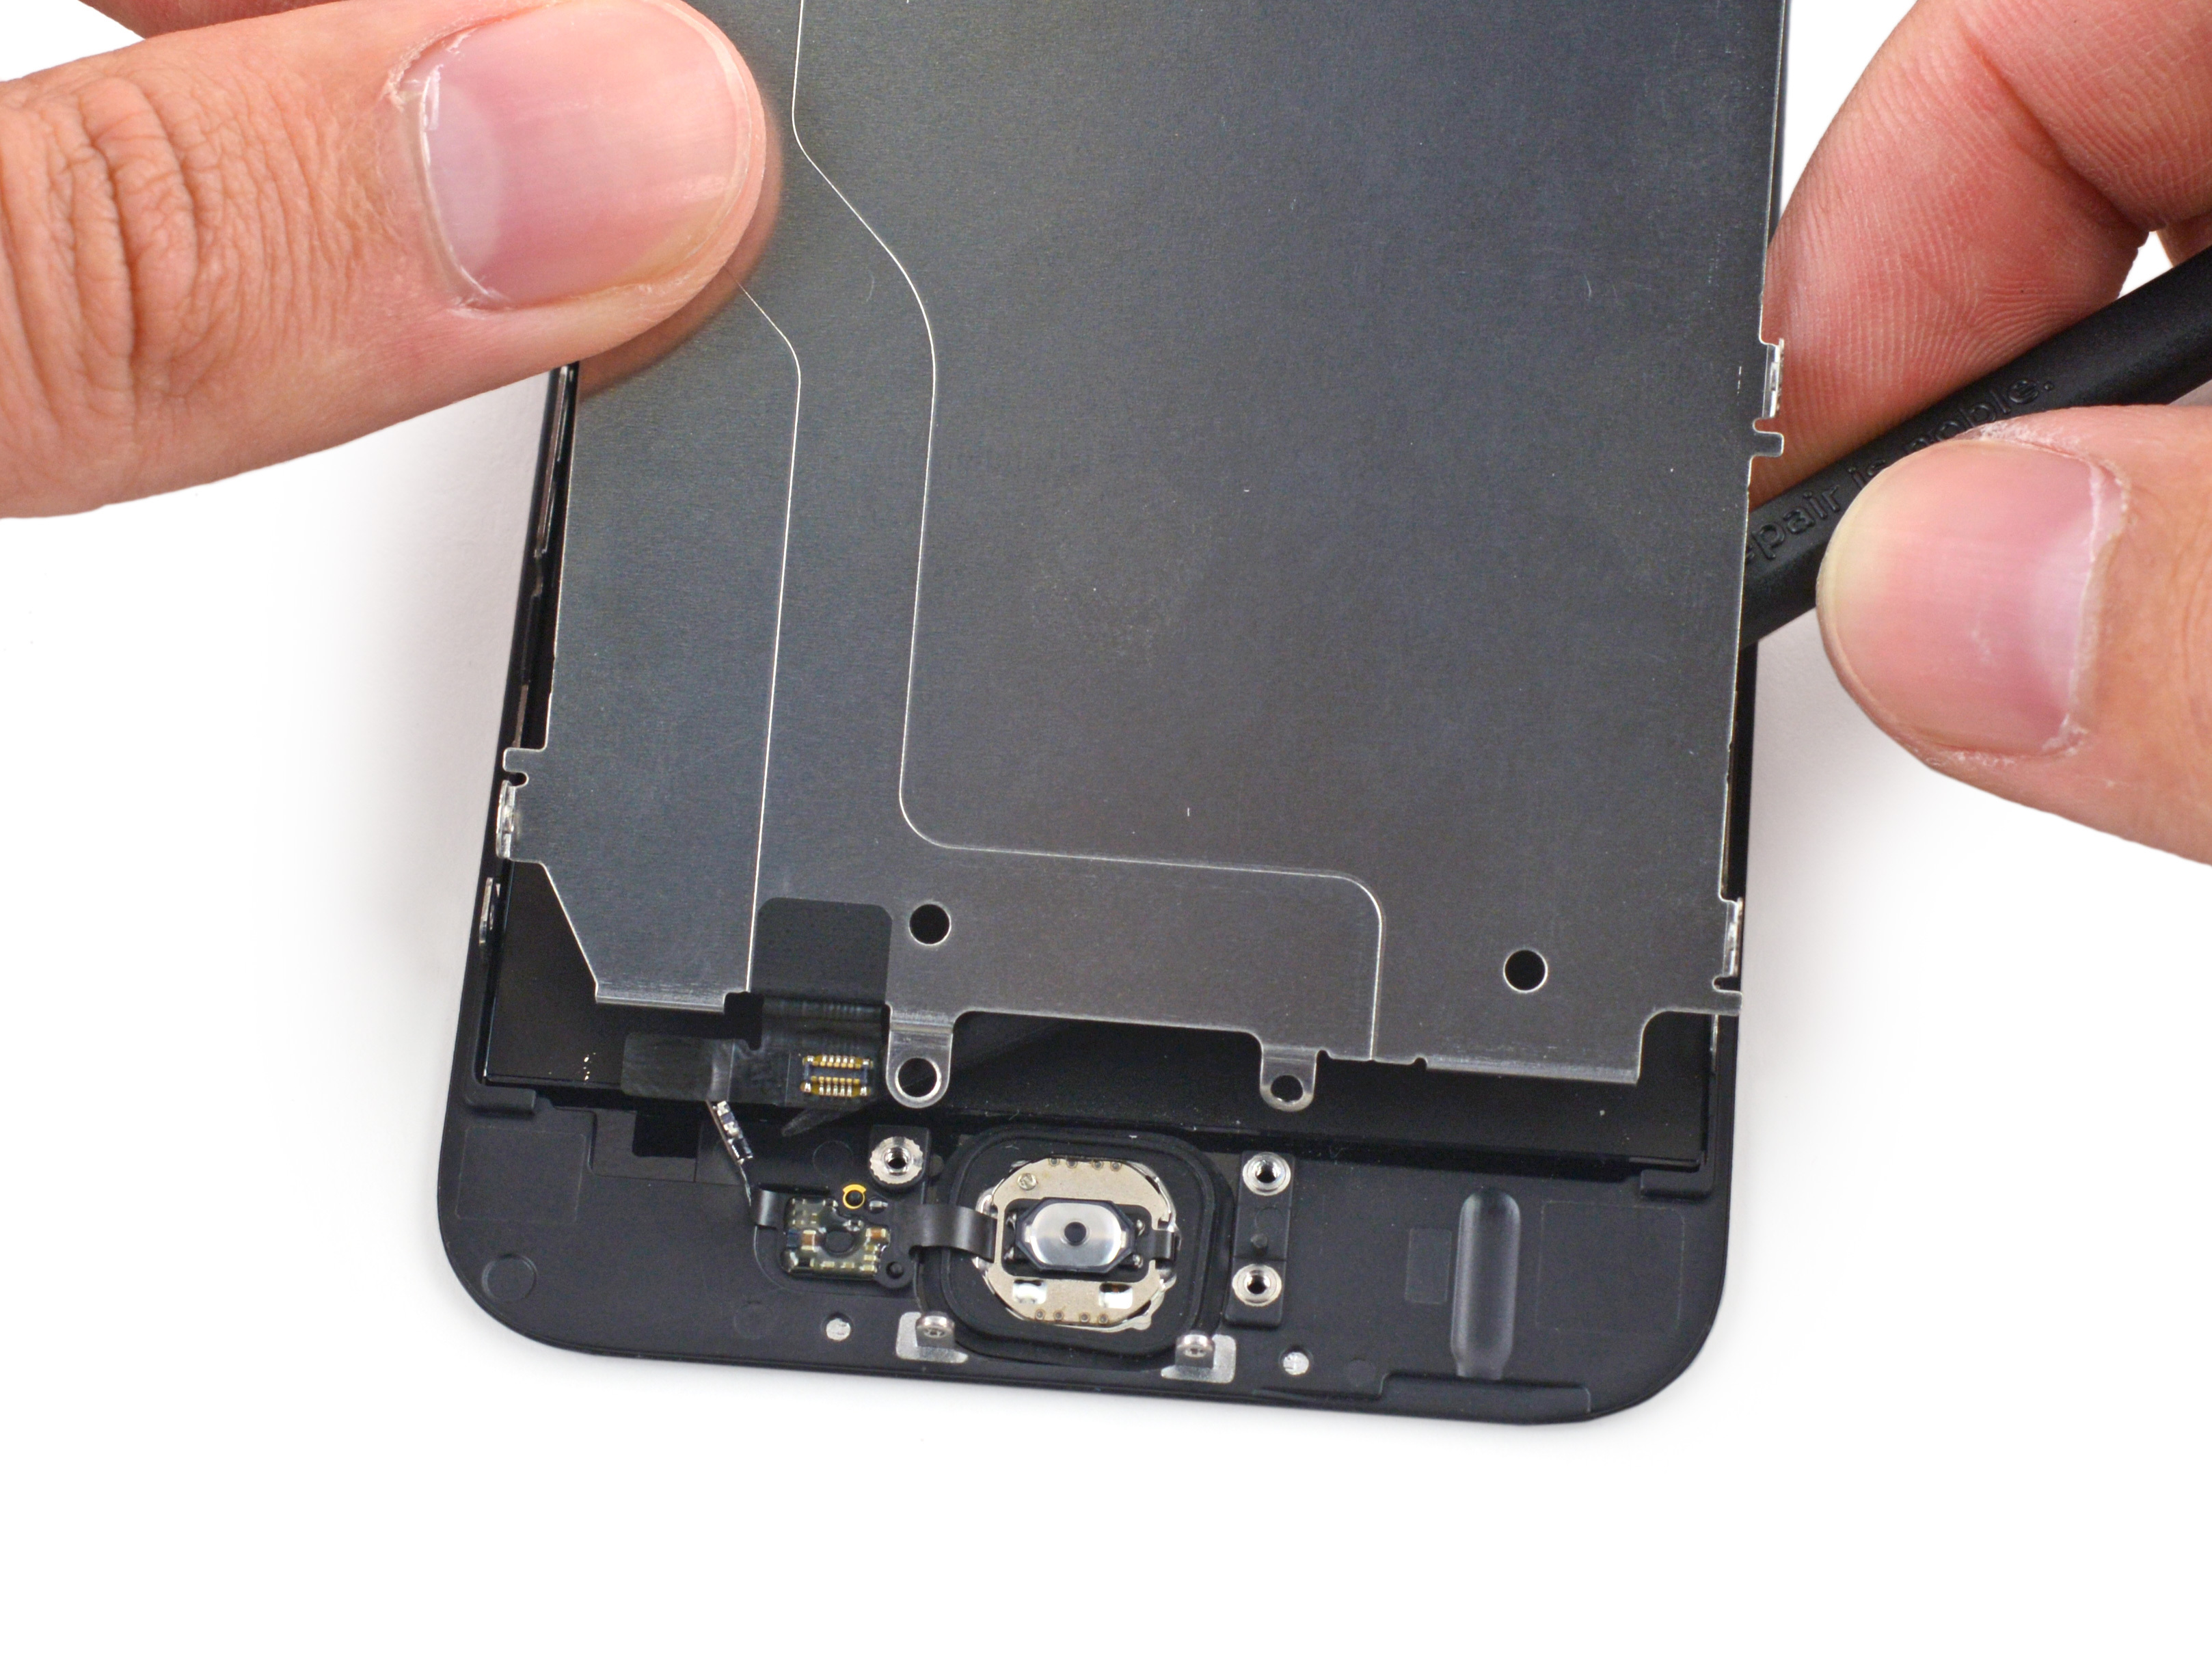 iPhone 6 LCD Shield Plate Replacement - iFixit Repair Guide